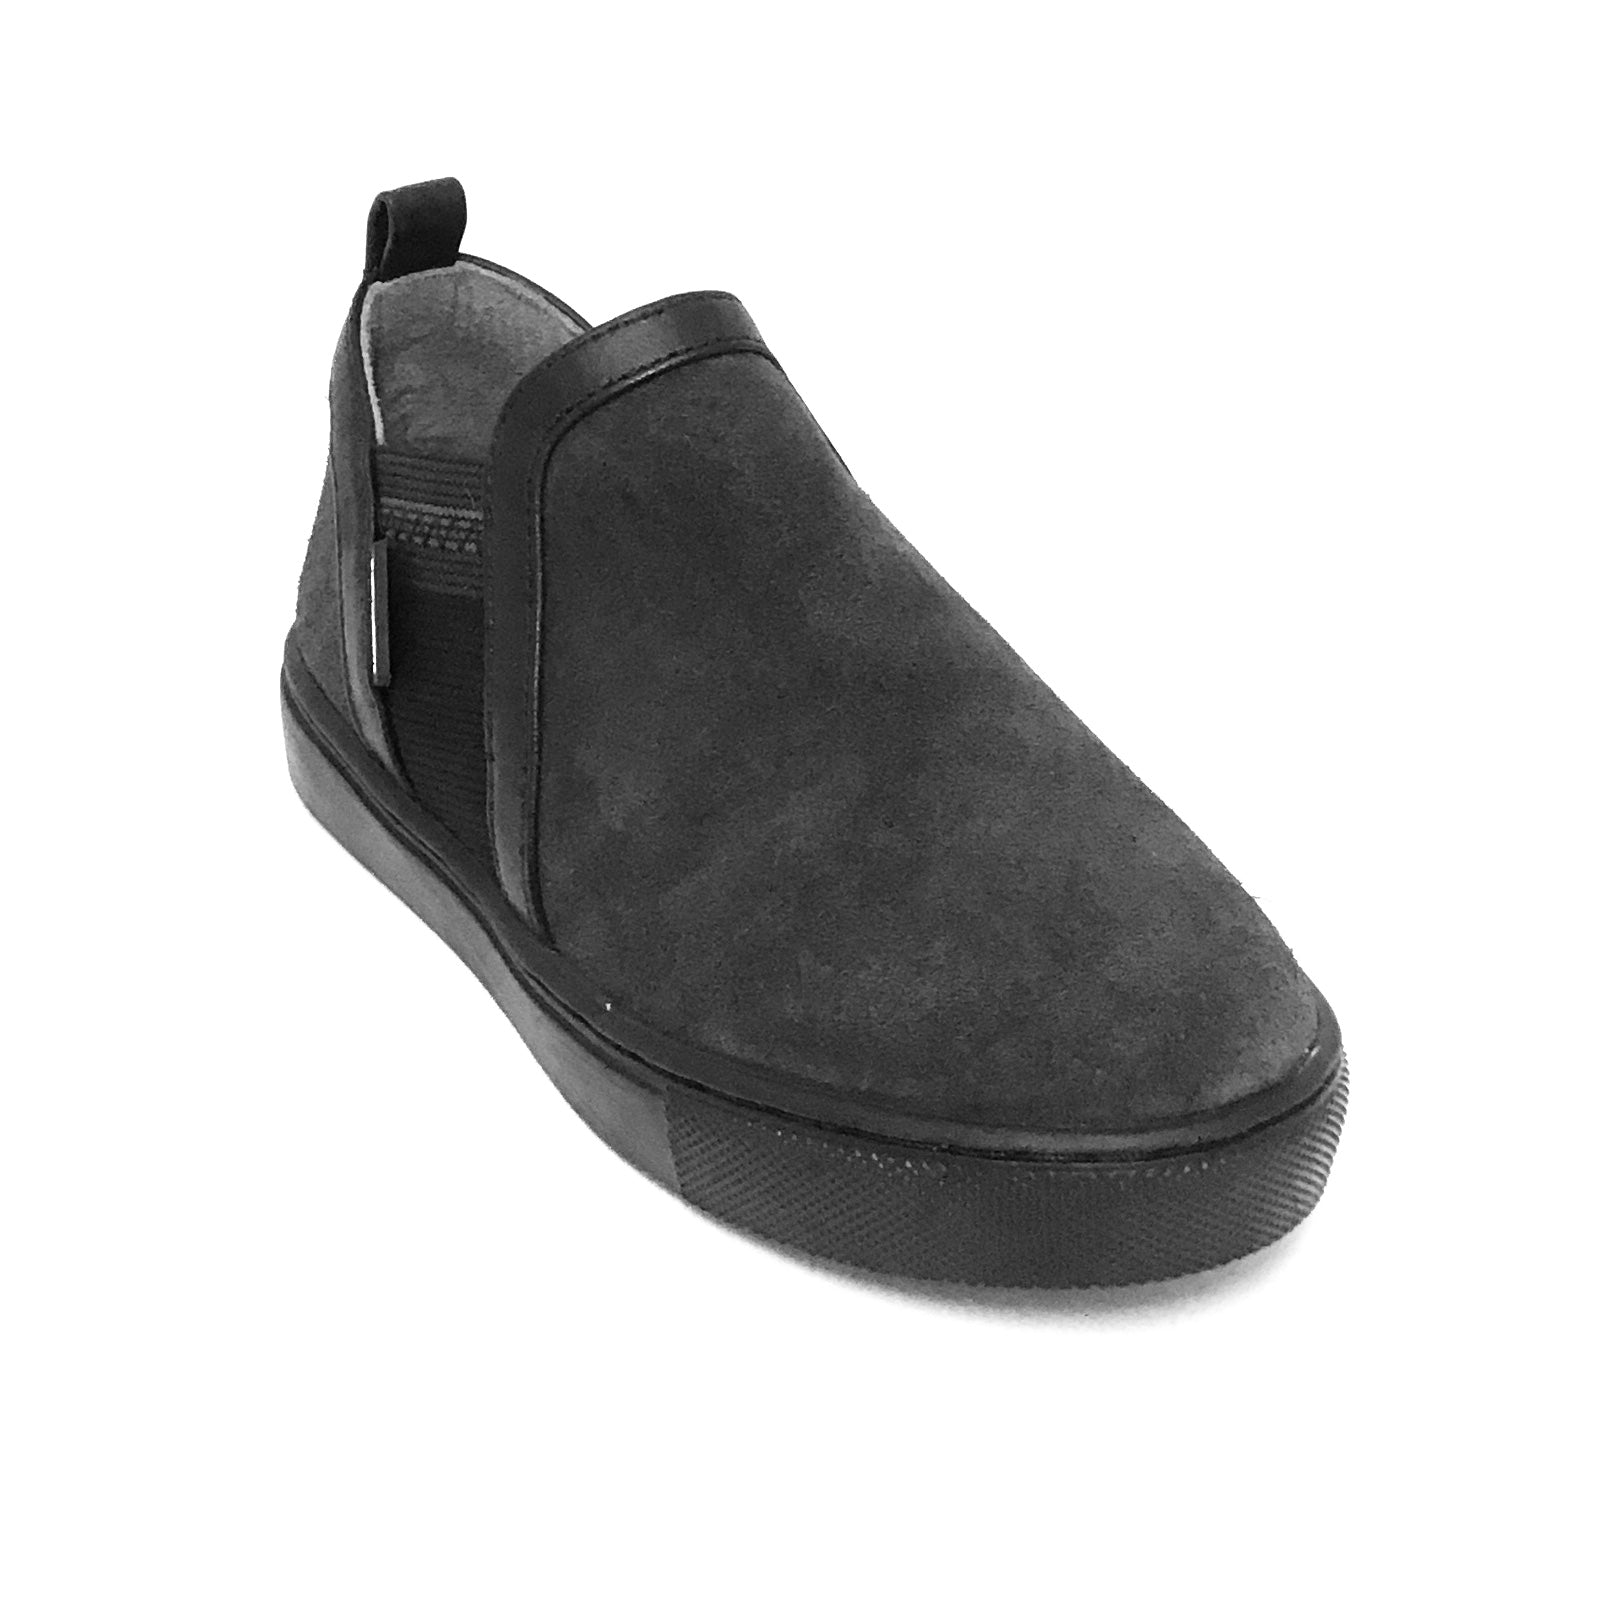 Venettini Gray Suede Slip On Shoe